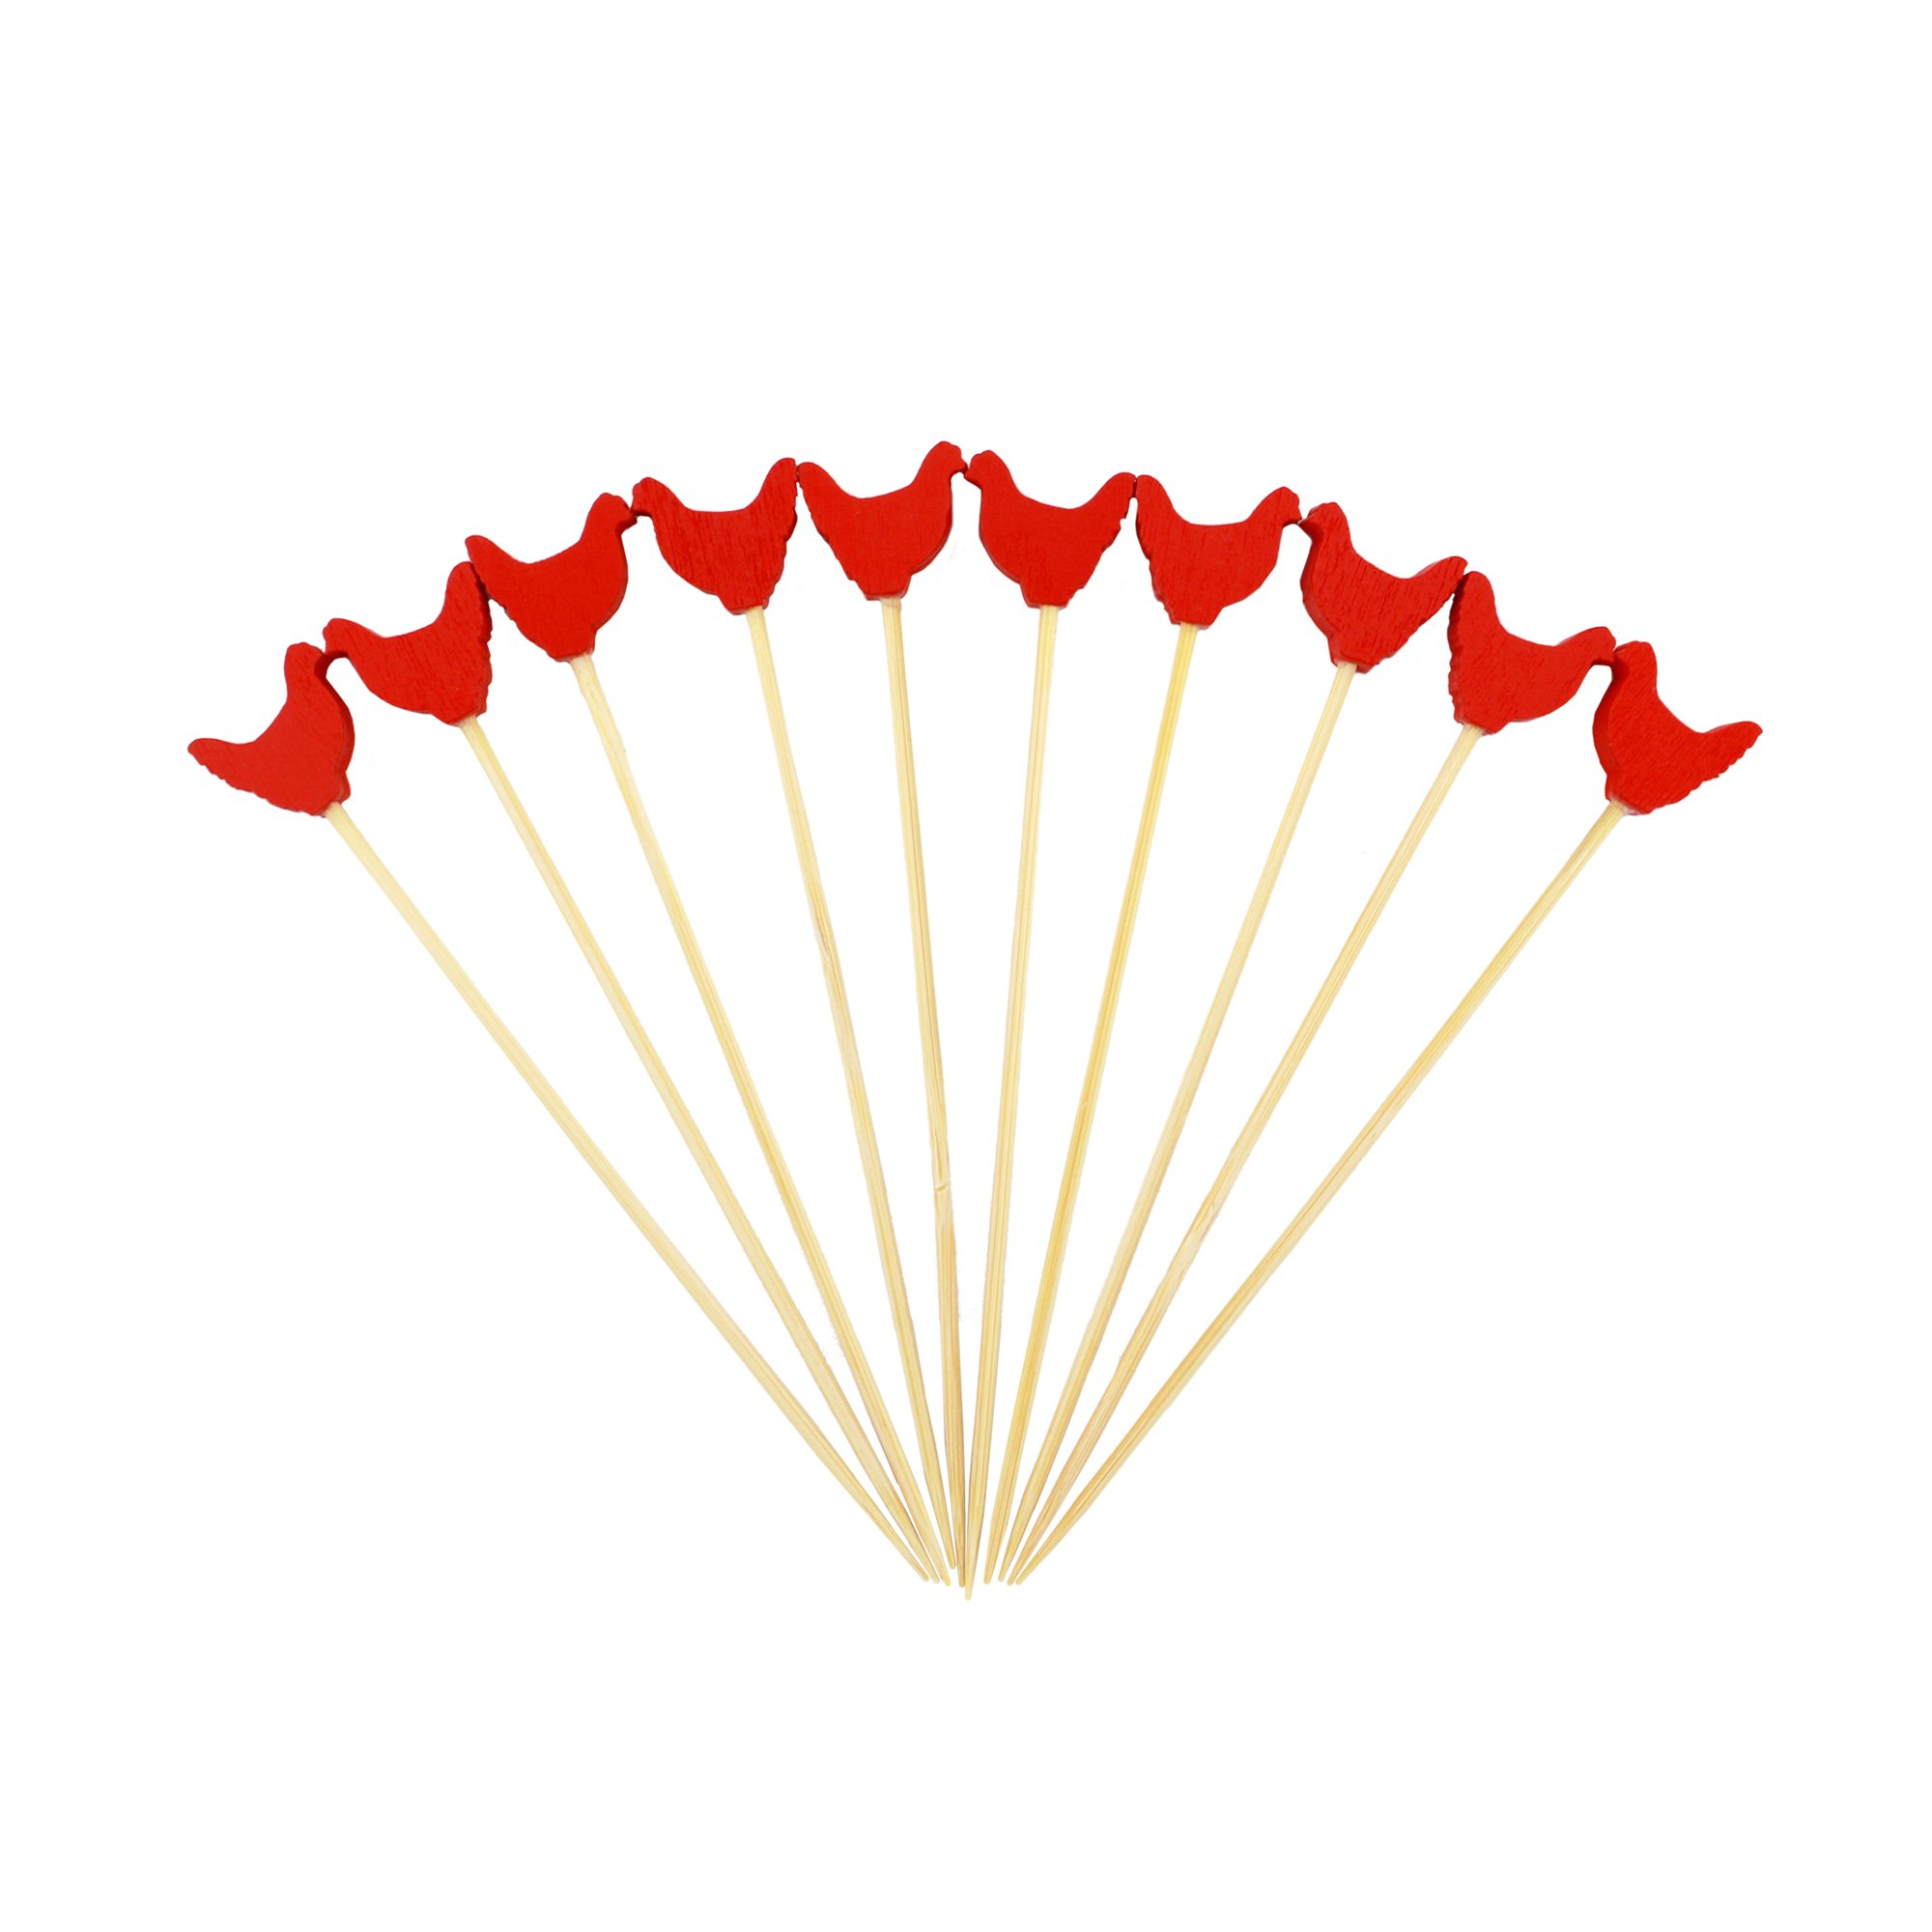 BambooMN 3.9'' Decorative Red Rooster End Bamboo Cocktail Fruit Sandwich Picks Skewers for Catered Events, Holiday's, Restaurants or Buffets Party Supplies, 1000 Pieces